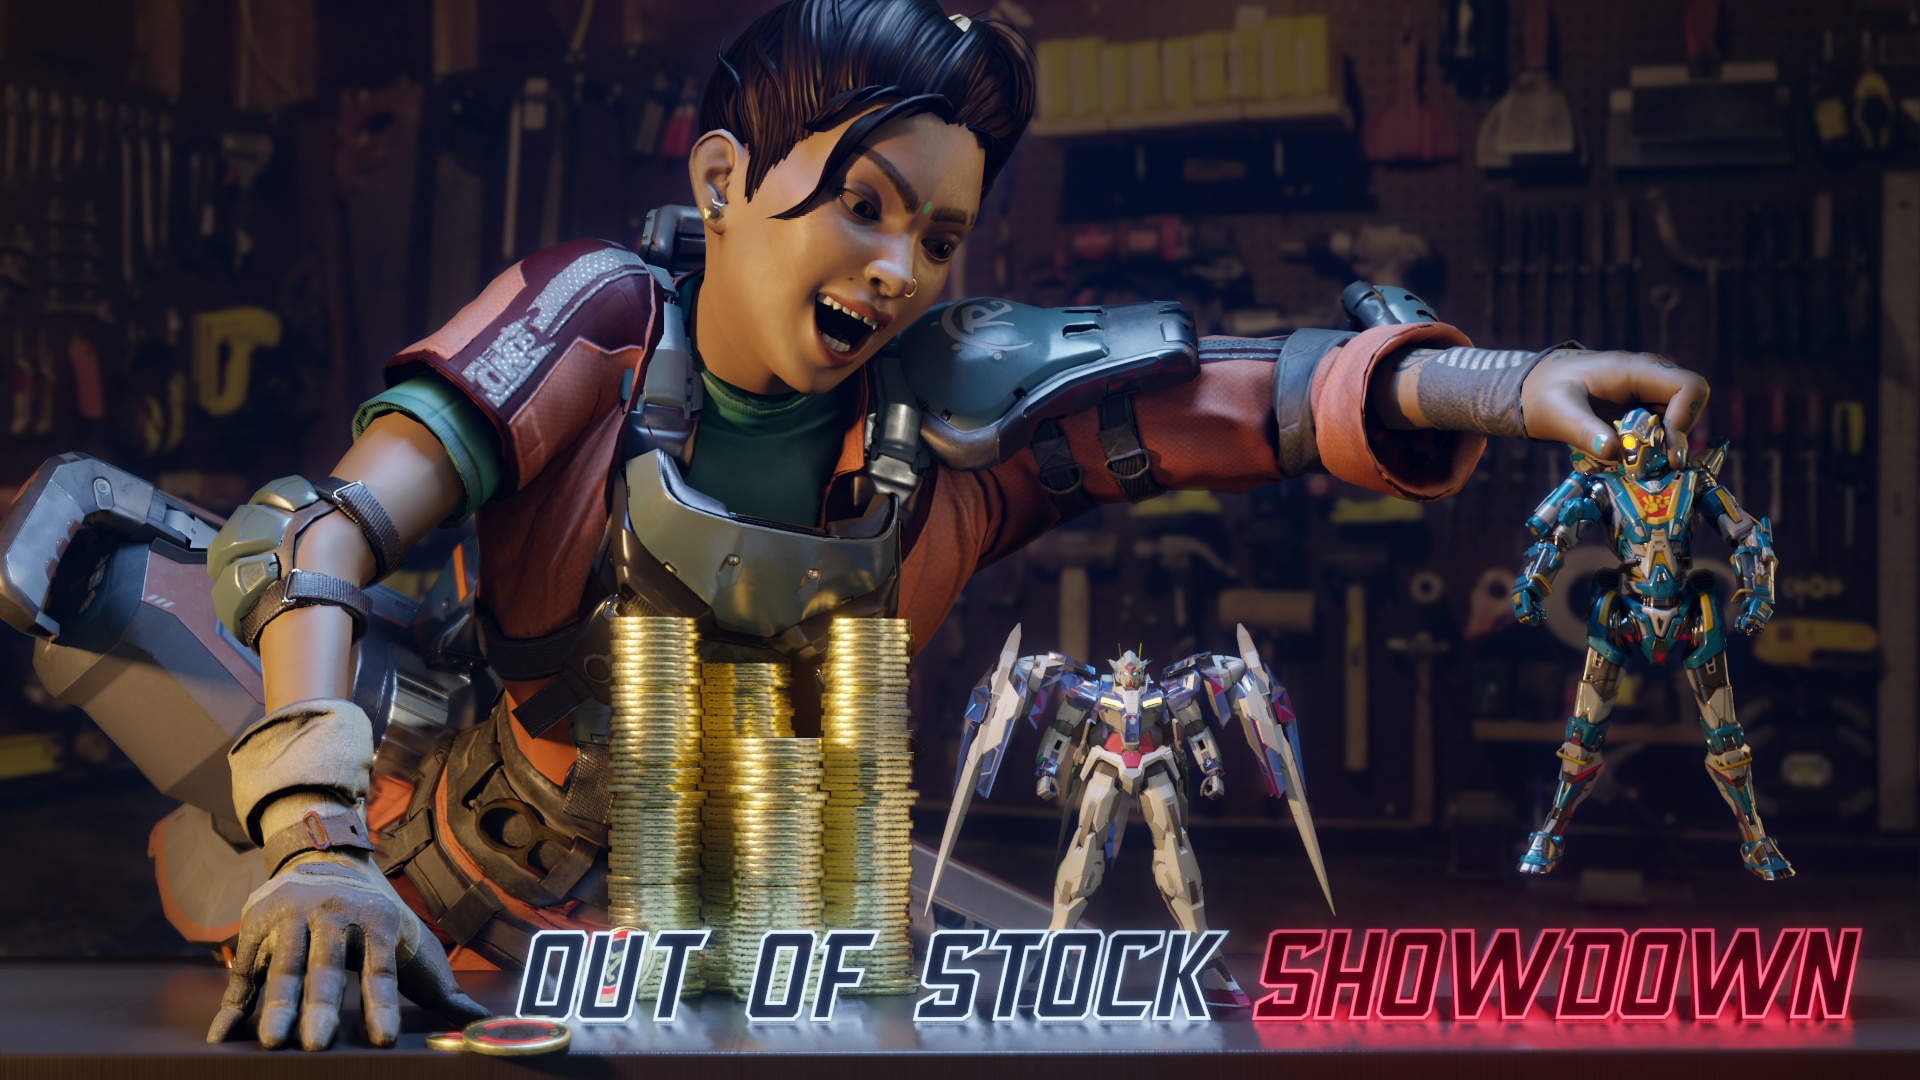 Get Ready for the Out of Stock Showdown: Apex Legends East vs. West